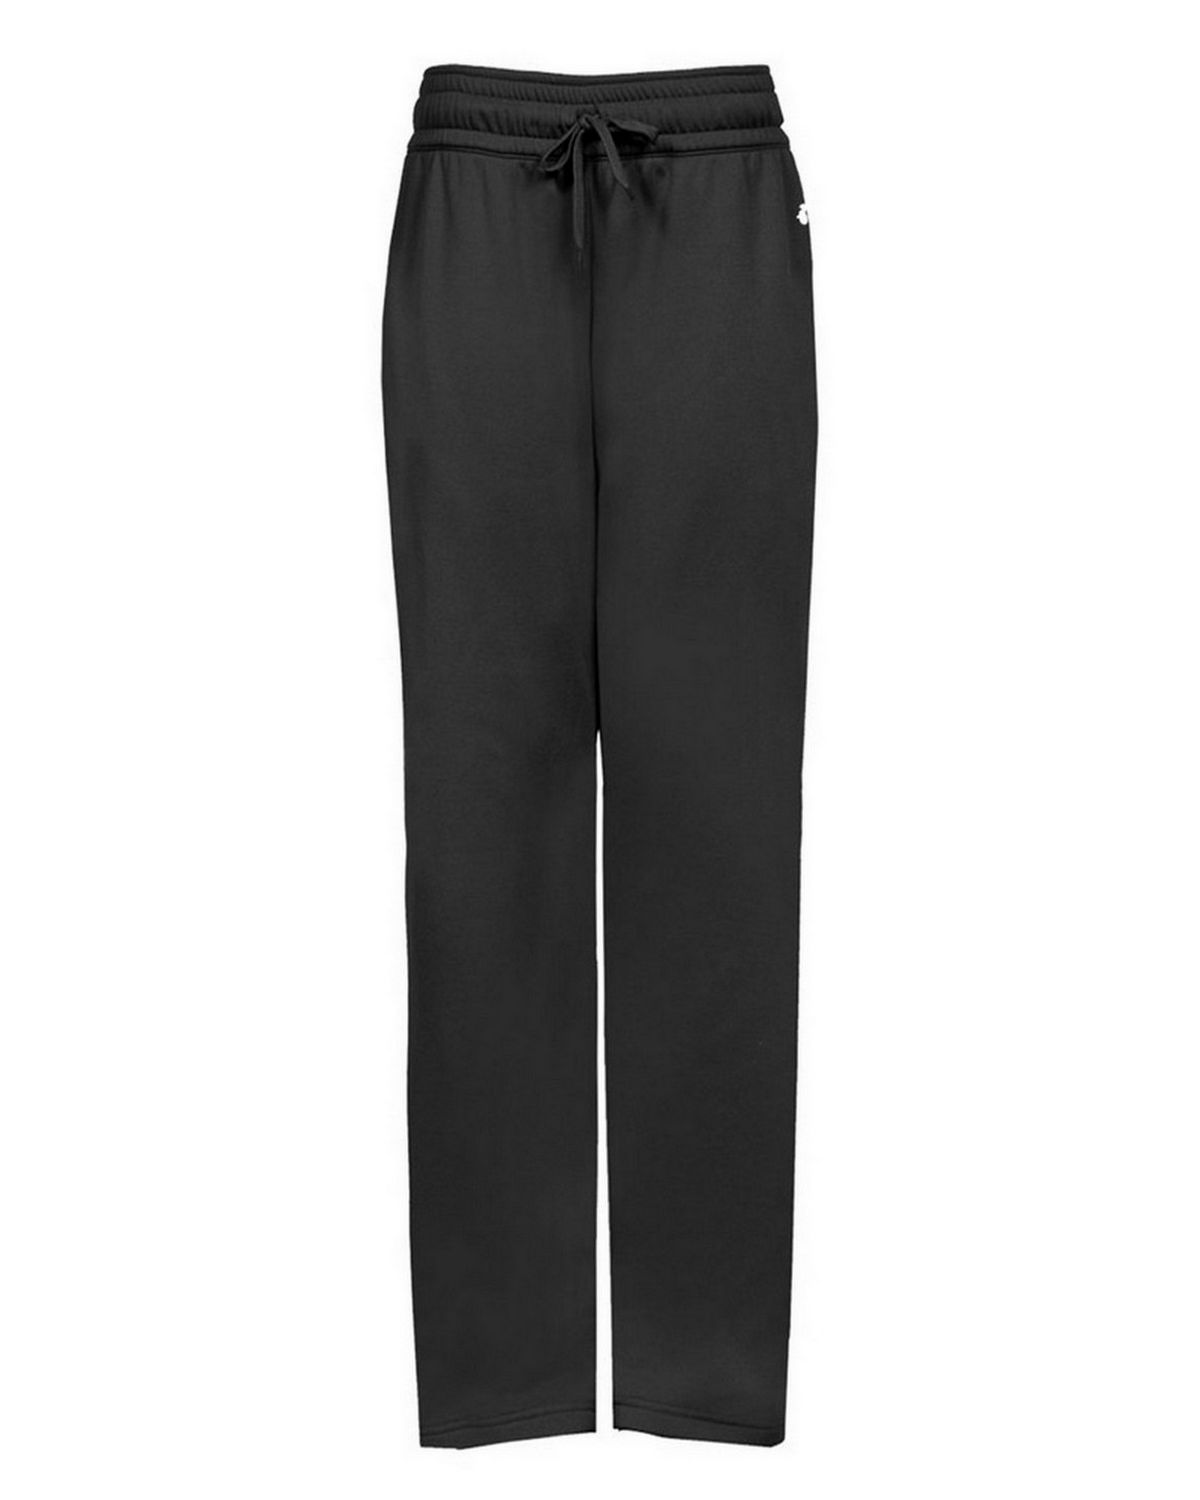 Badger 1470 BD Ladies Performance Fleece Pant - Black - S 1470